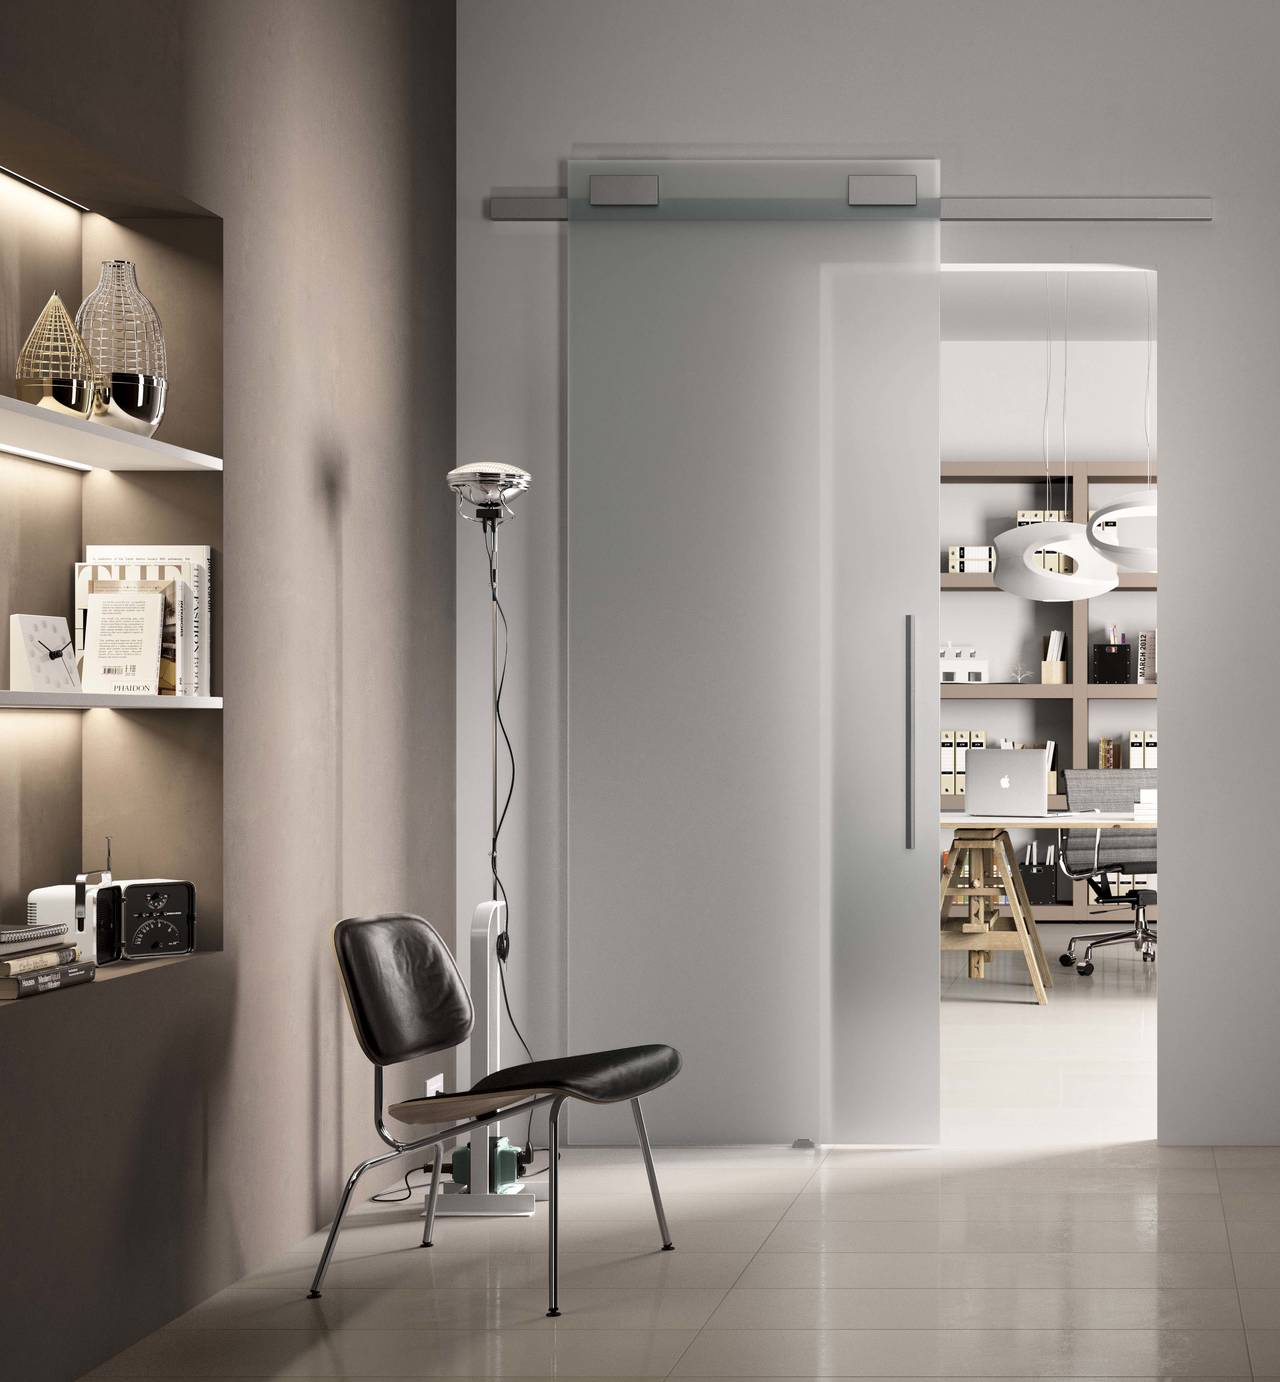 Superficie Continua Cristal Basic Zero By Ferrerolegno Area